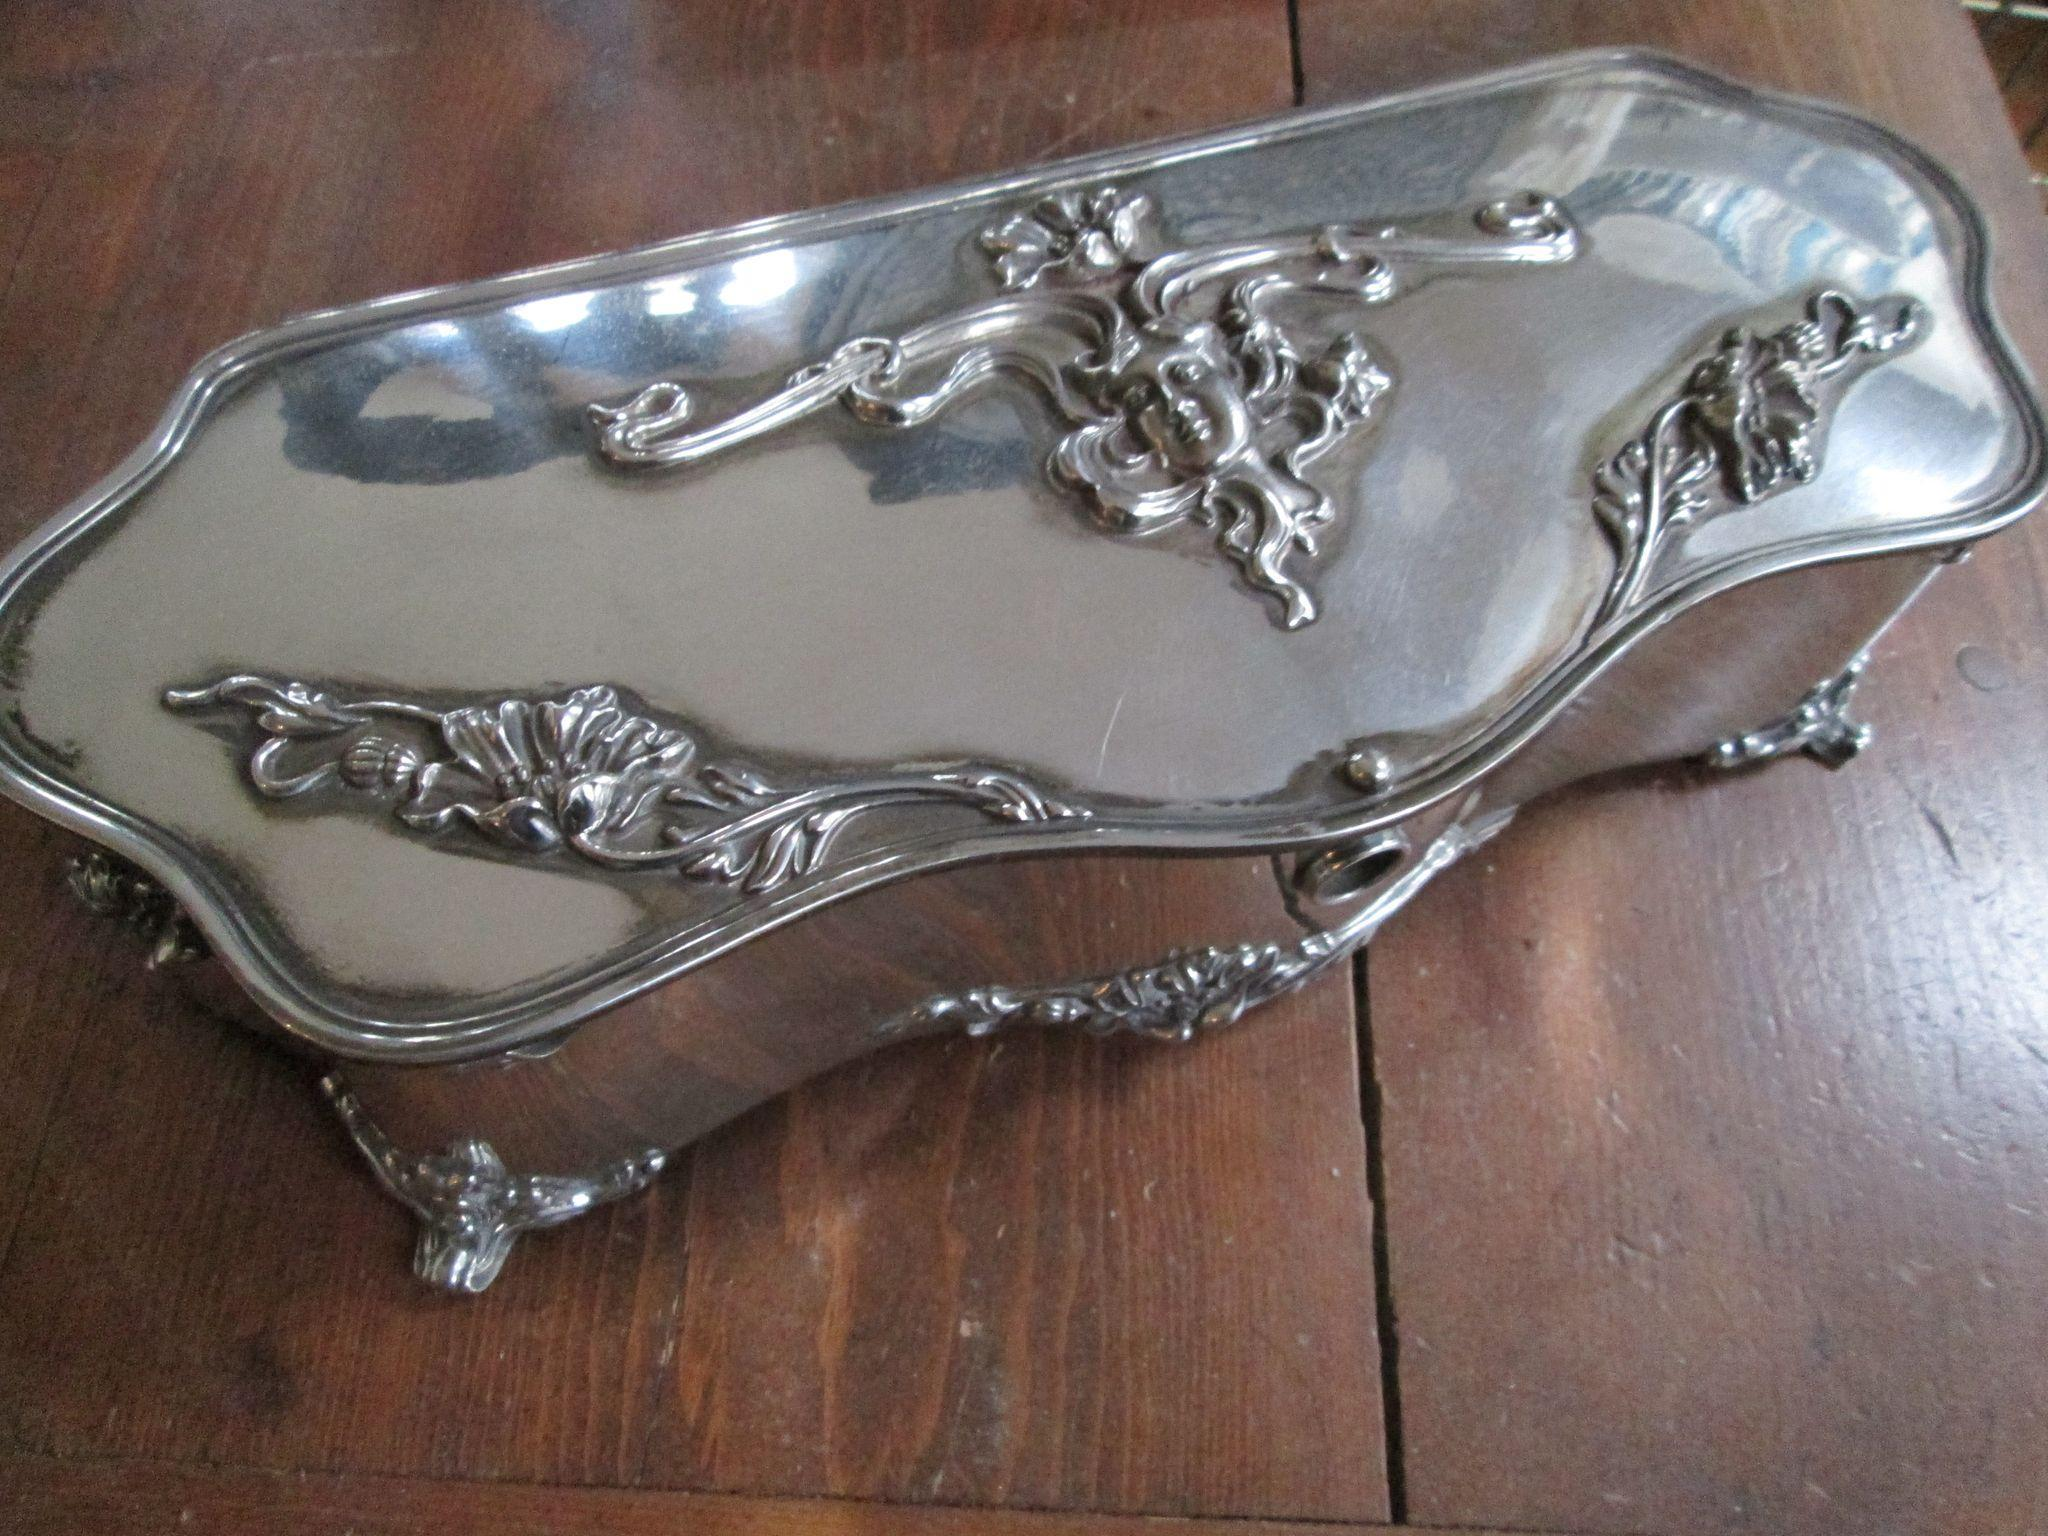 Large Art Nouveau Jewelry Box - Derby Silver Company - Lovely Lady and Floral Motif